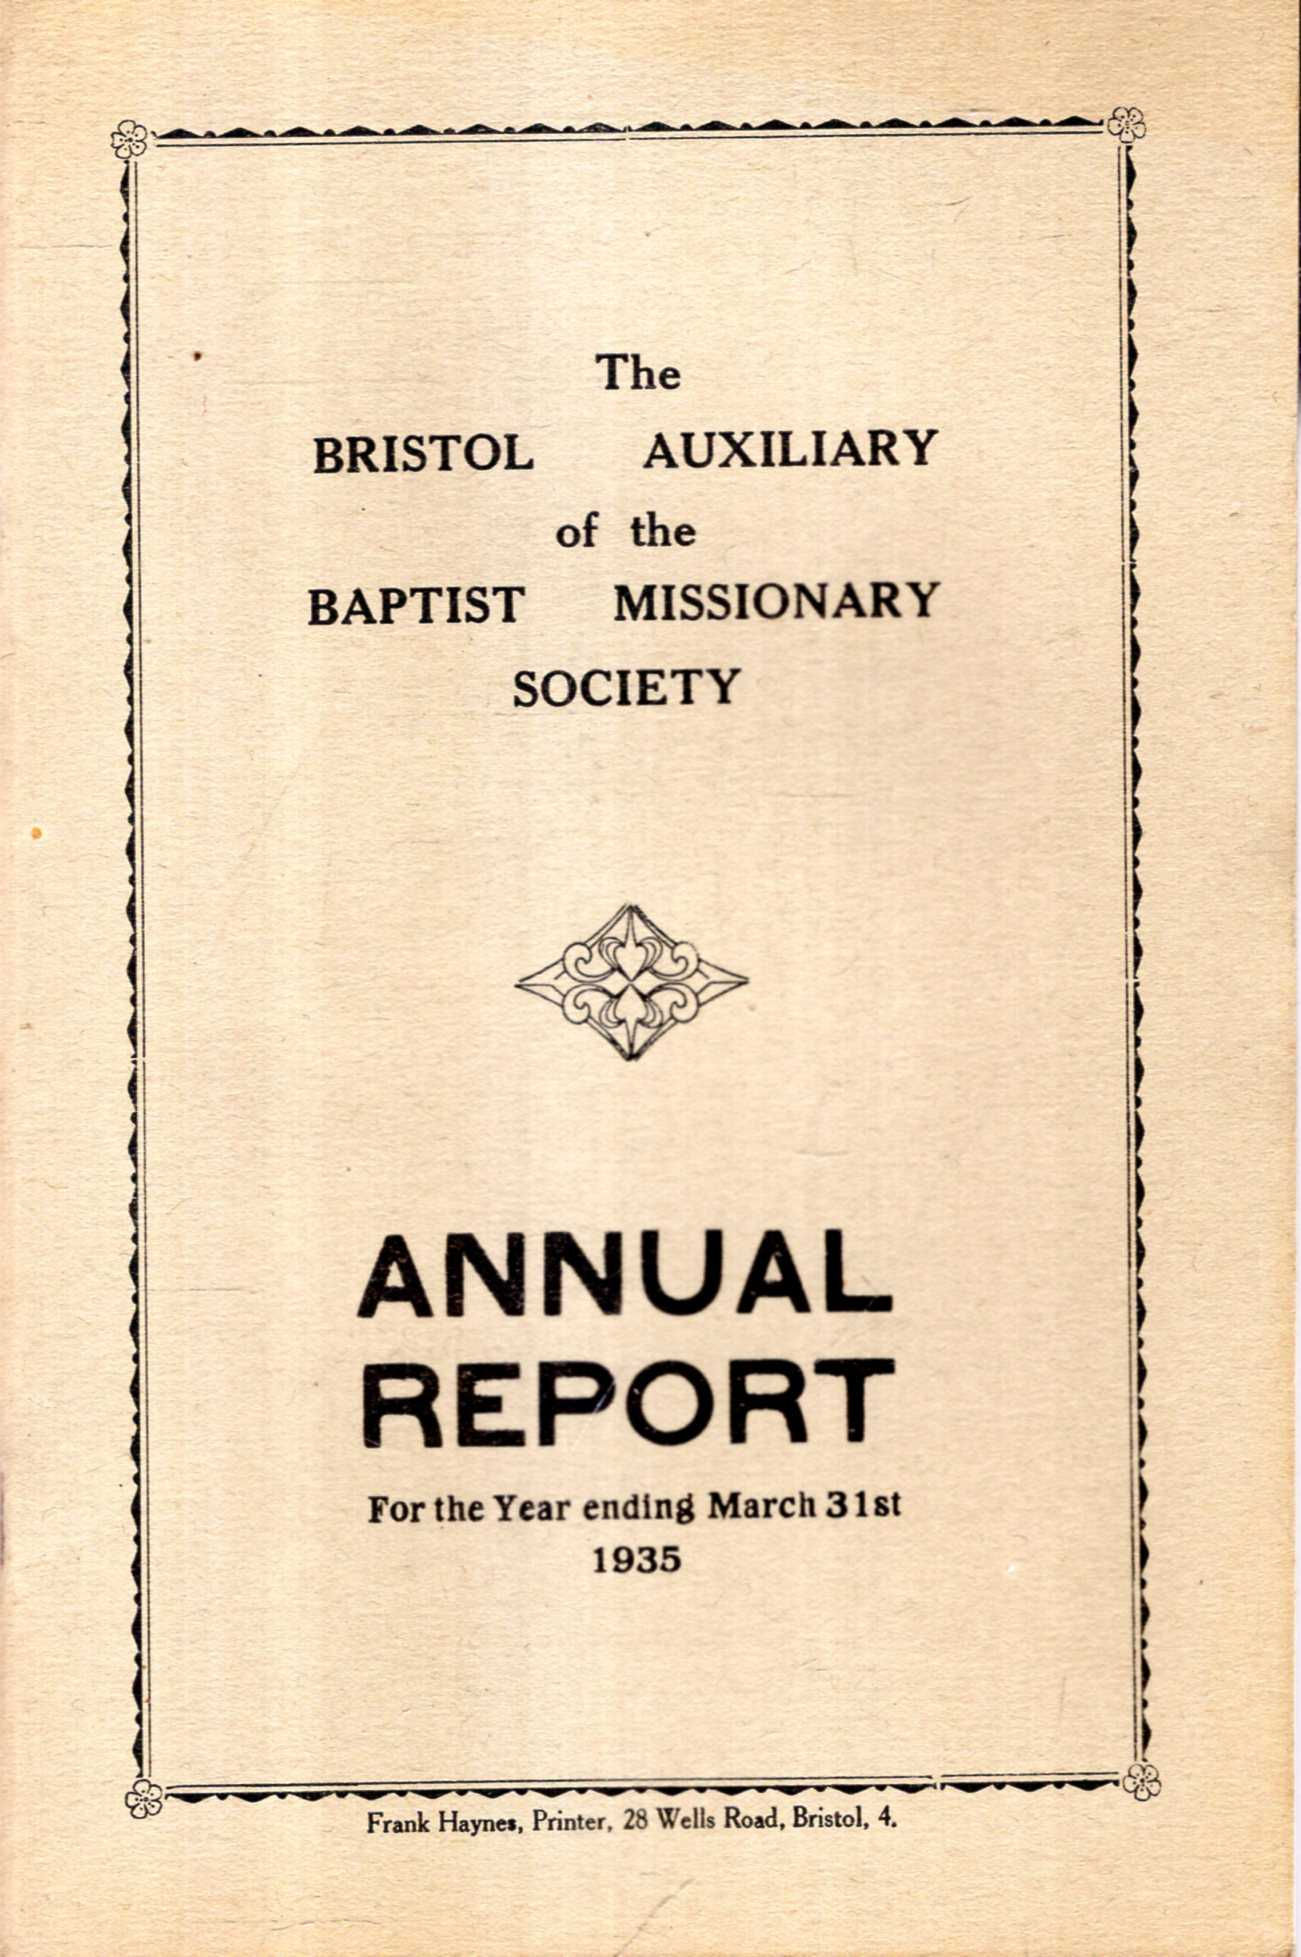 Image for The Bristol Auxiliary of the Baptist Missionary Society, Annual Report for the year ending March 31st, 1935